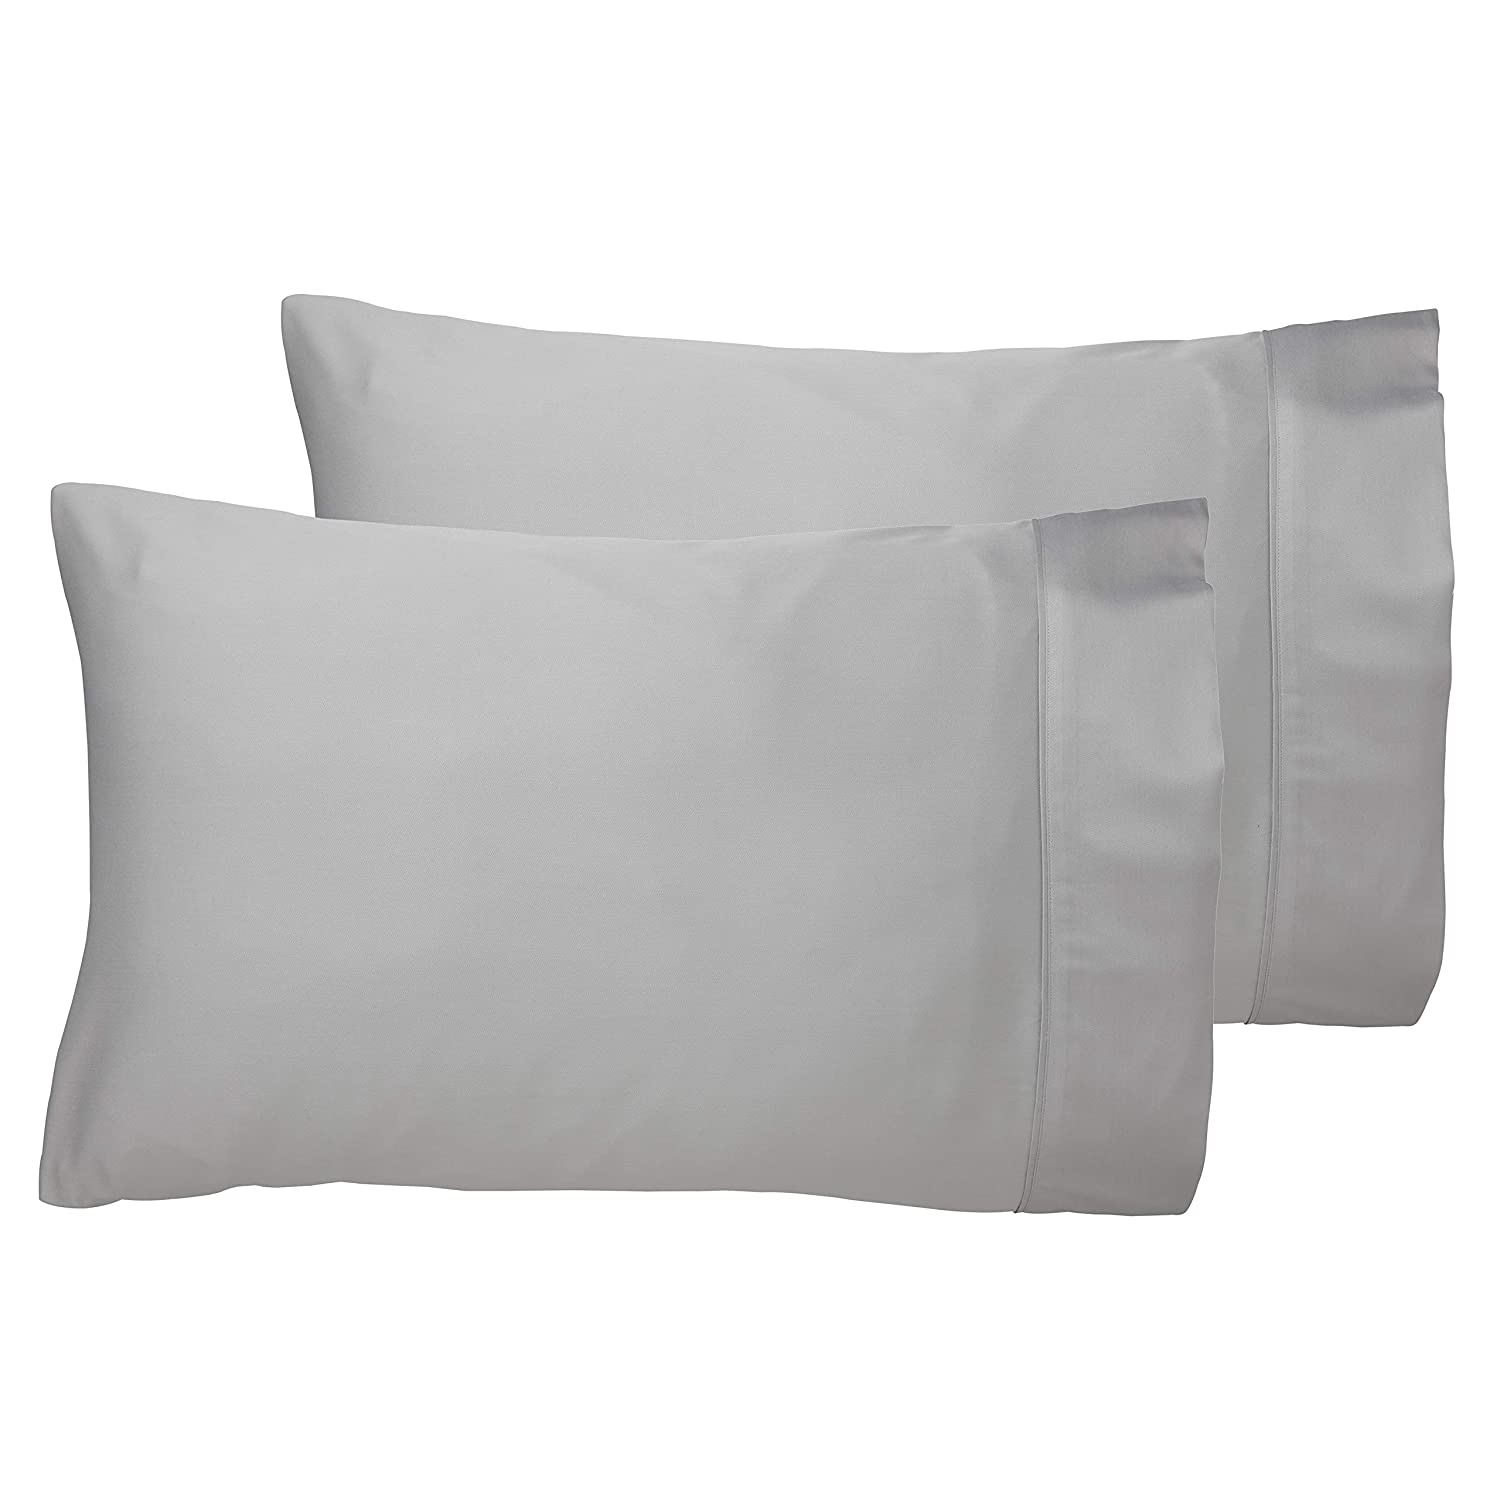 100% Bamboo Bed Linen - Luxury Pillowcases - Housewife Style (Set of 2) (Natural White) All Bamboo